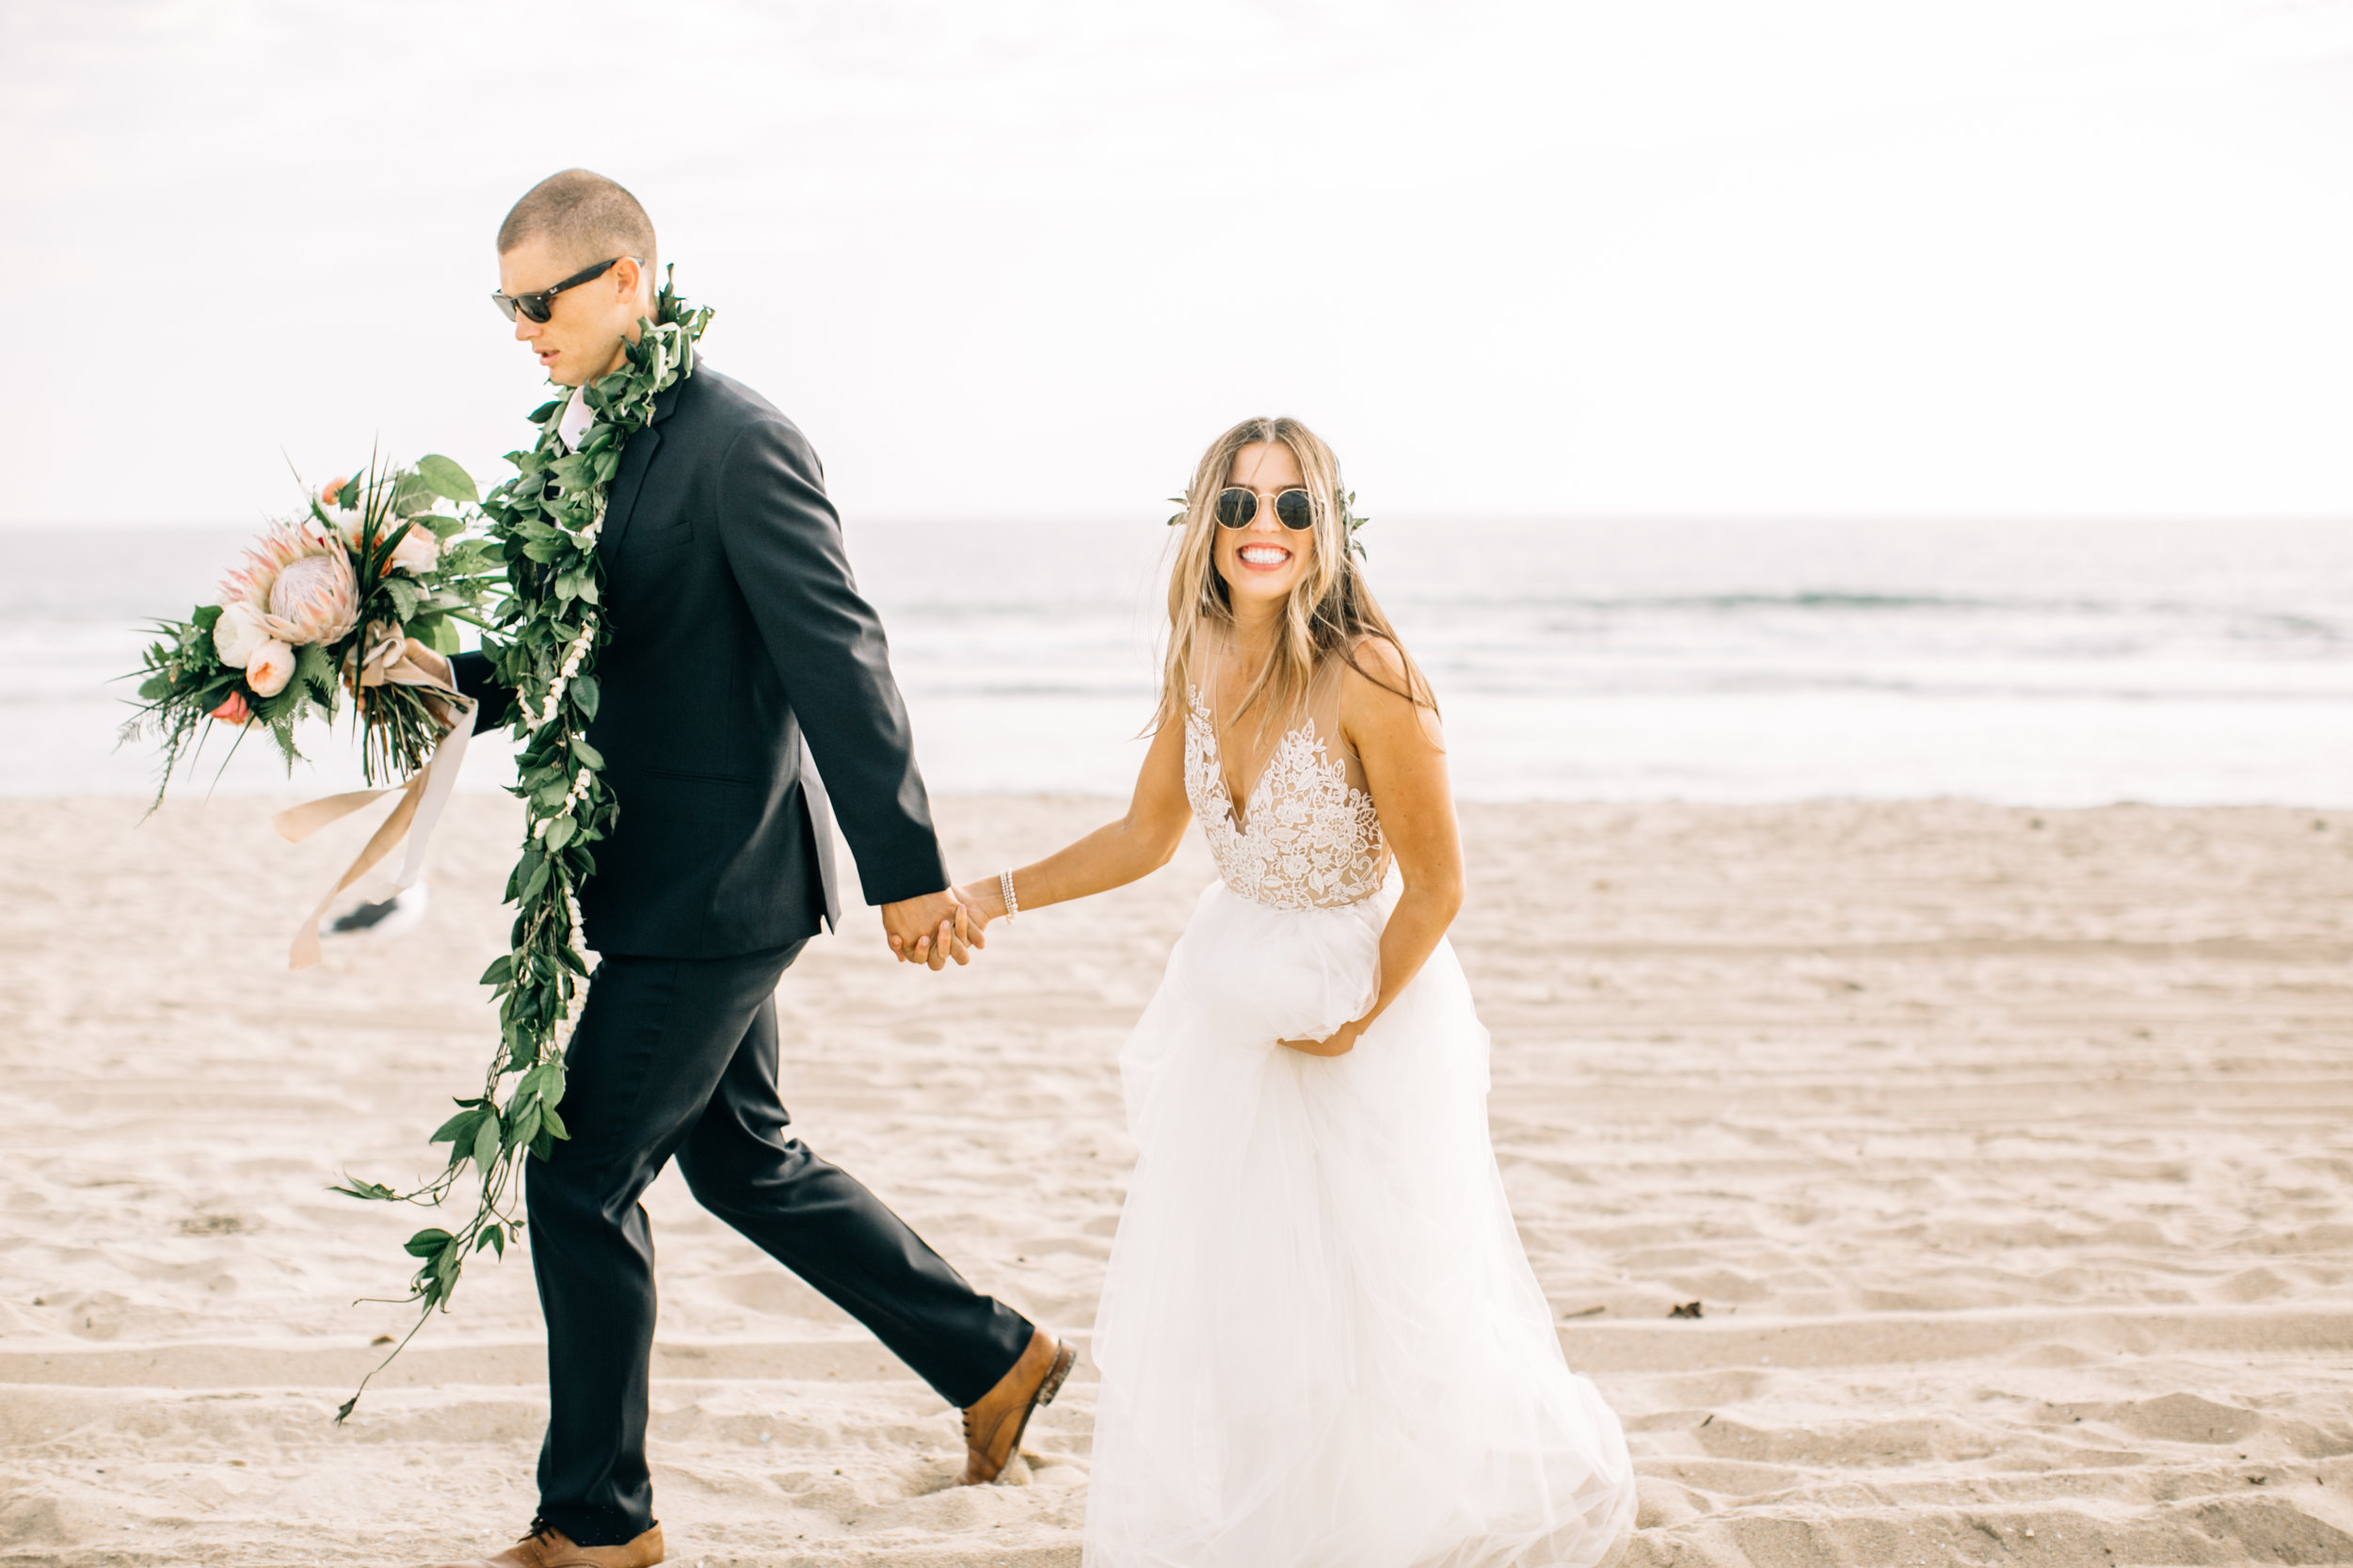 Monica & Tanner wanted a ceremony that truly reflected them, so they found a venue in their hometown of Huntington Beach, California. Monica owns a floral design company and loved creating all the arrangements for her own special day.The couple chose a tropical theme, which was perfect considering Tanner's Hawaiian roots. His sisters and grandmother even performed a traditional hula at the reception!